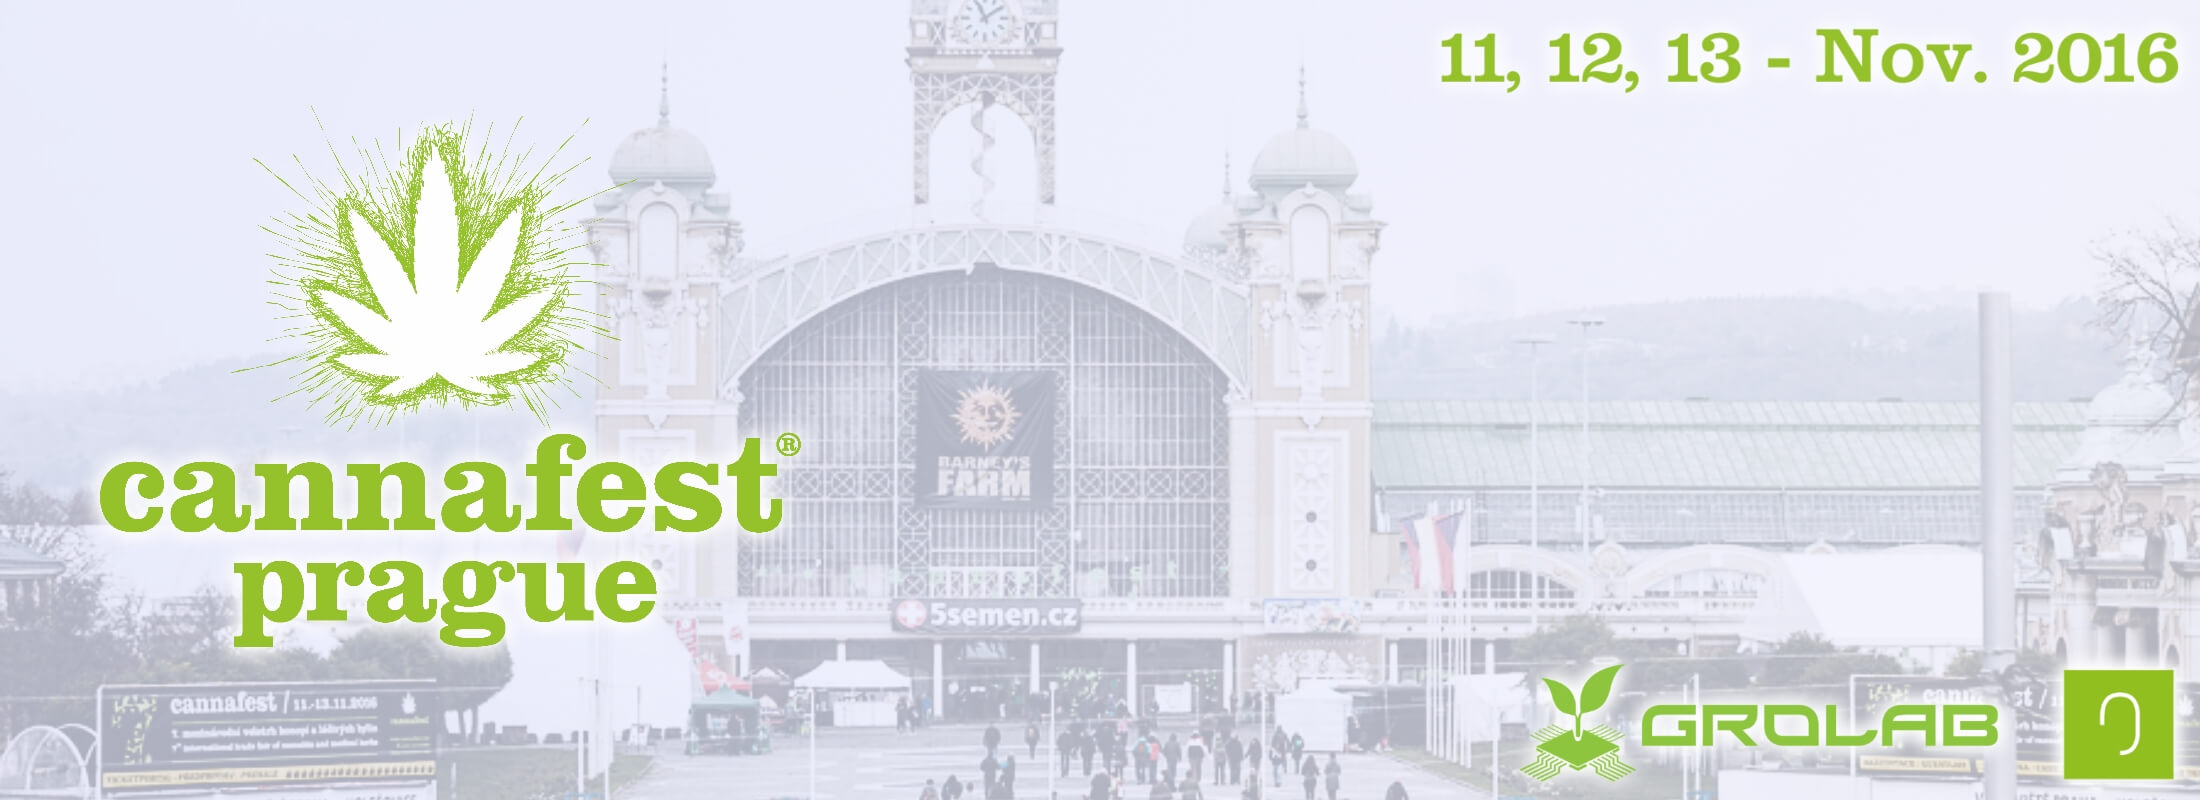 Cannafest Prague 2016 outside view, with Cannafest logo on left, on top right the event date (11, 12 and 13 - Nov. 2016), Open Grow™ and GroLab™ logos on bottom-right corner